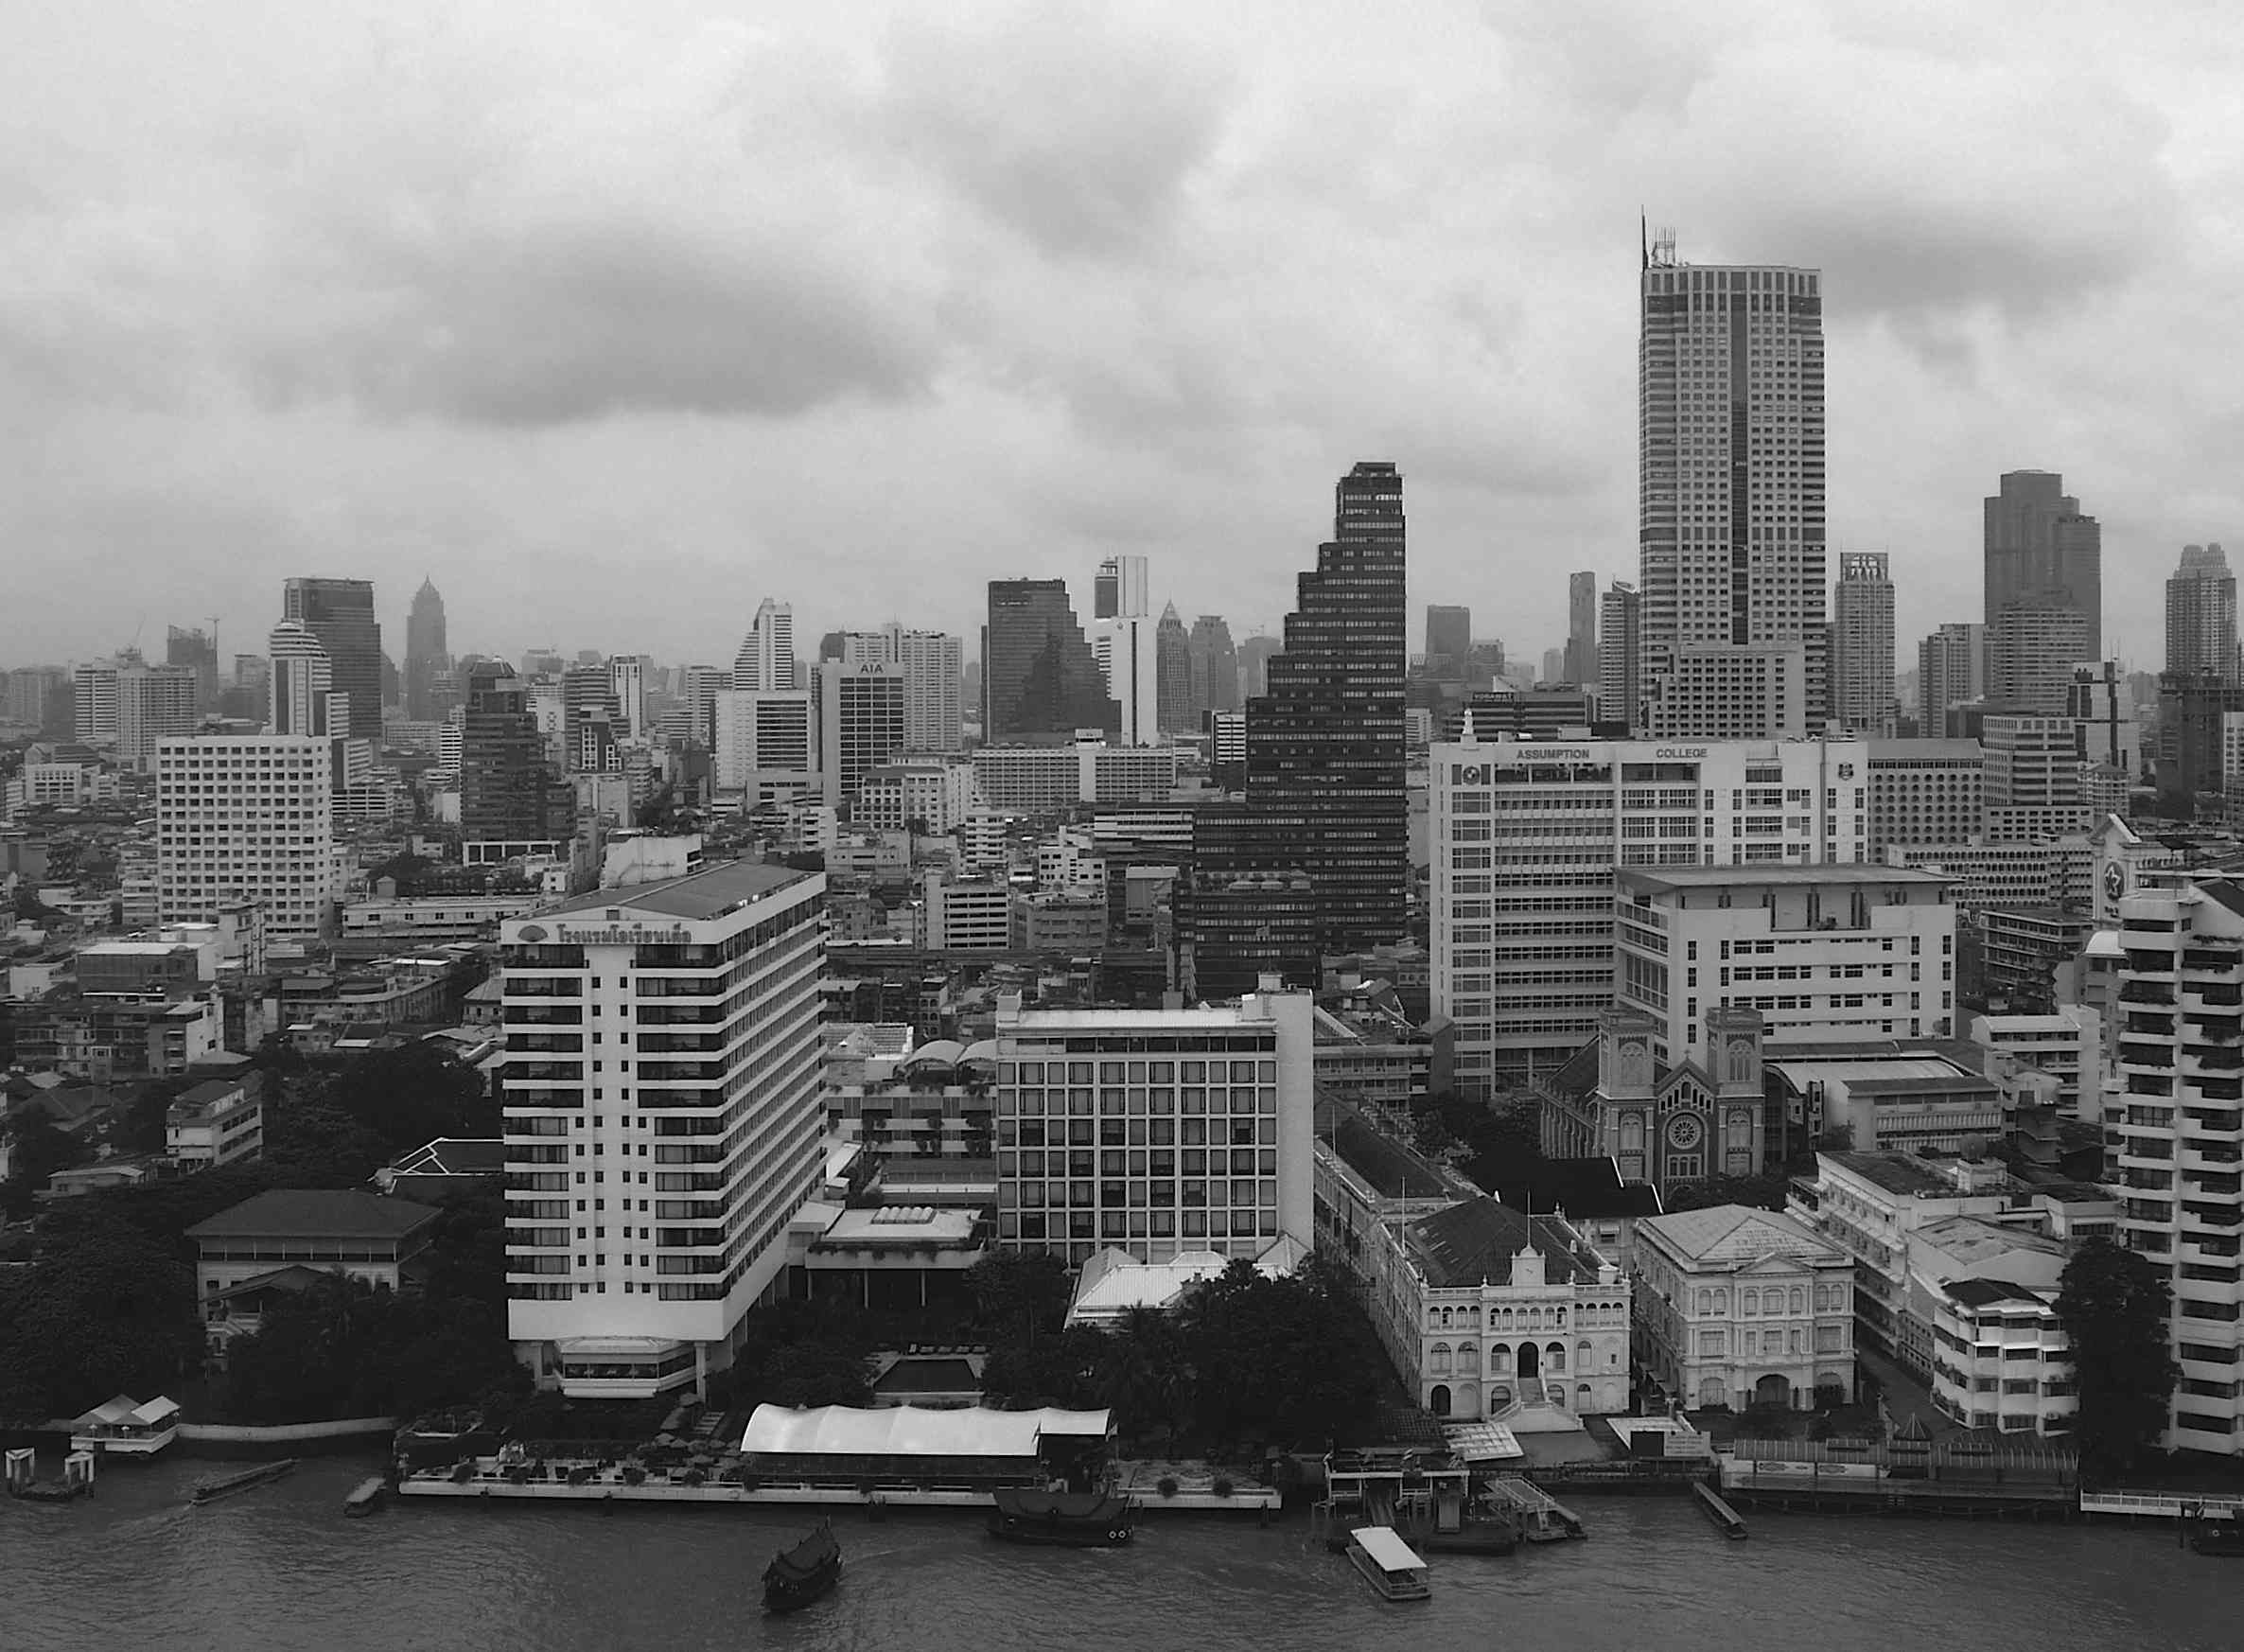 Bangkok Skyline from the Pen